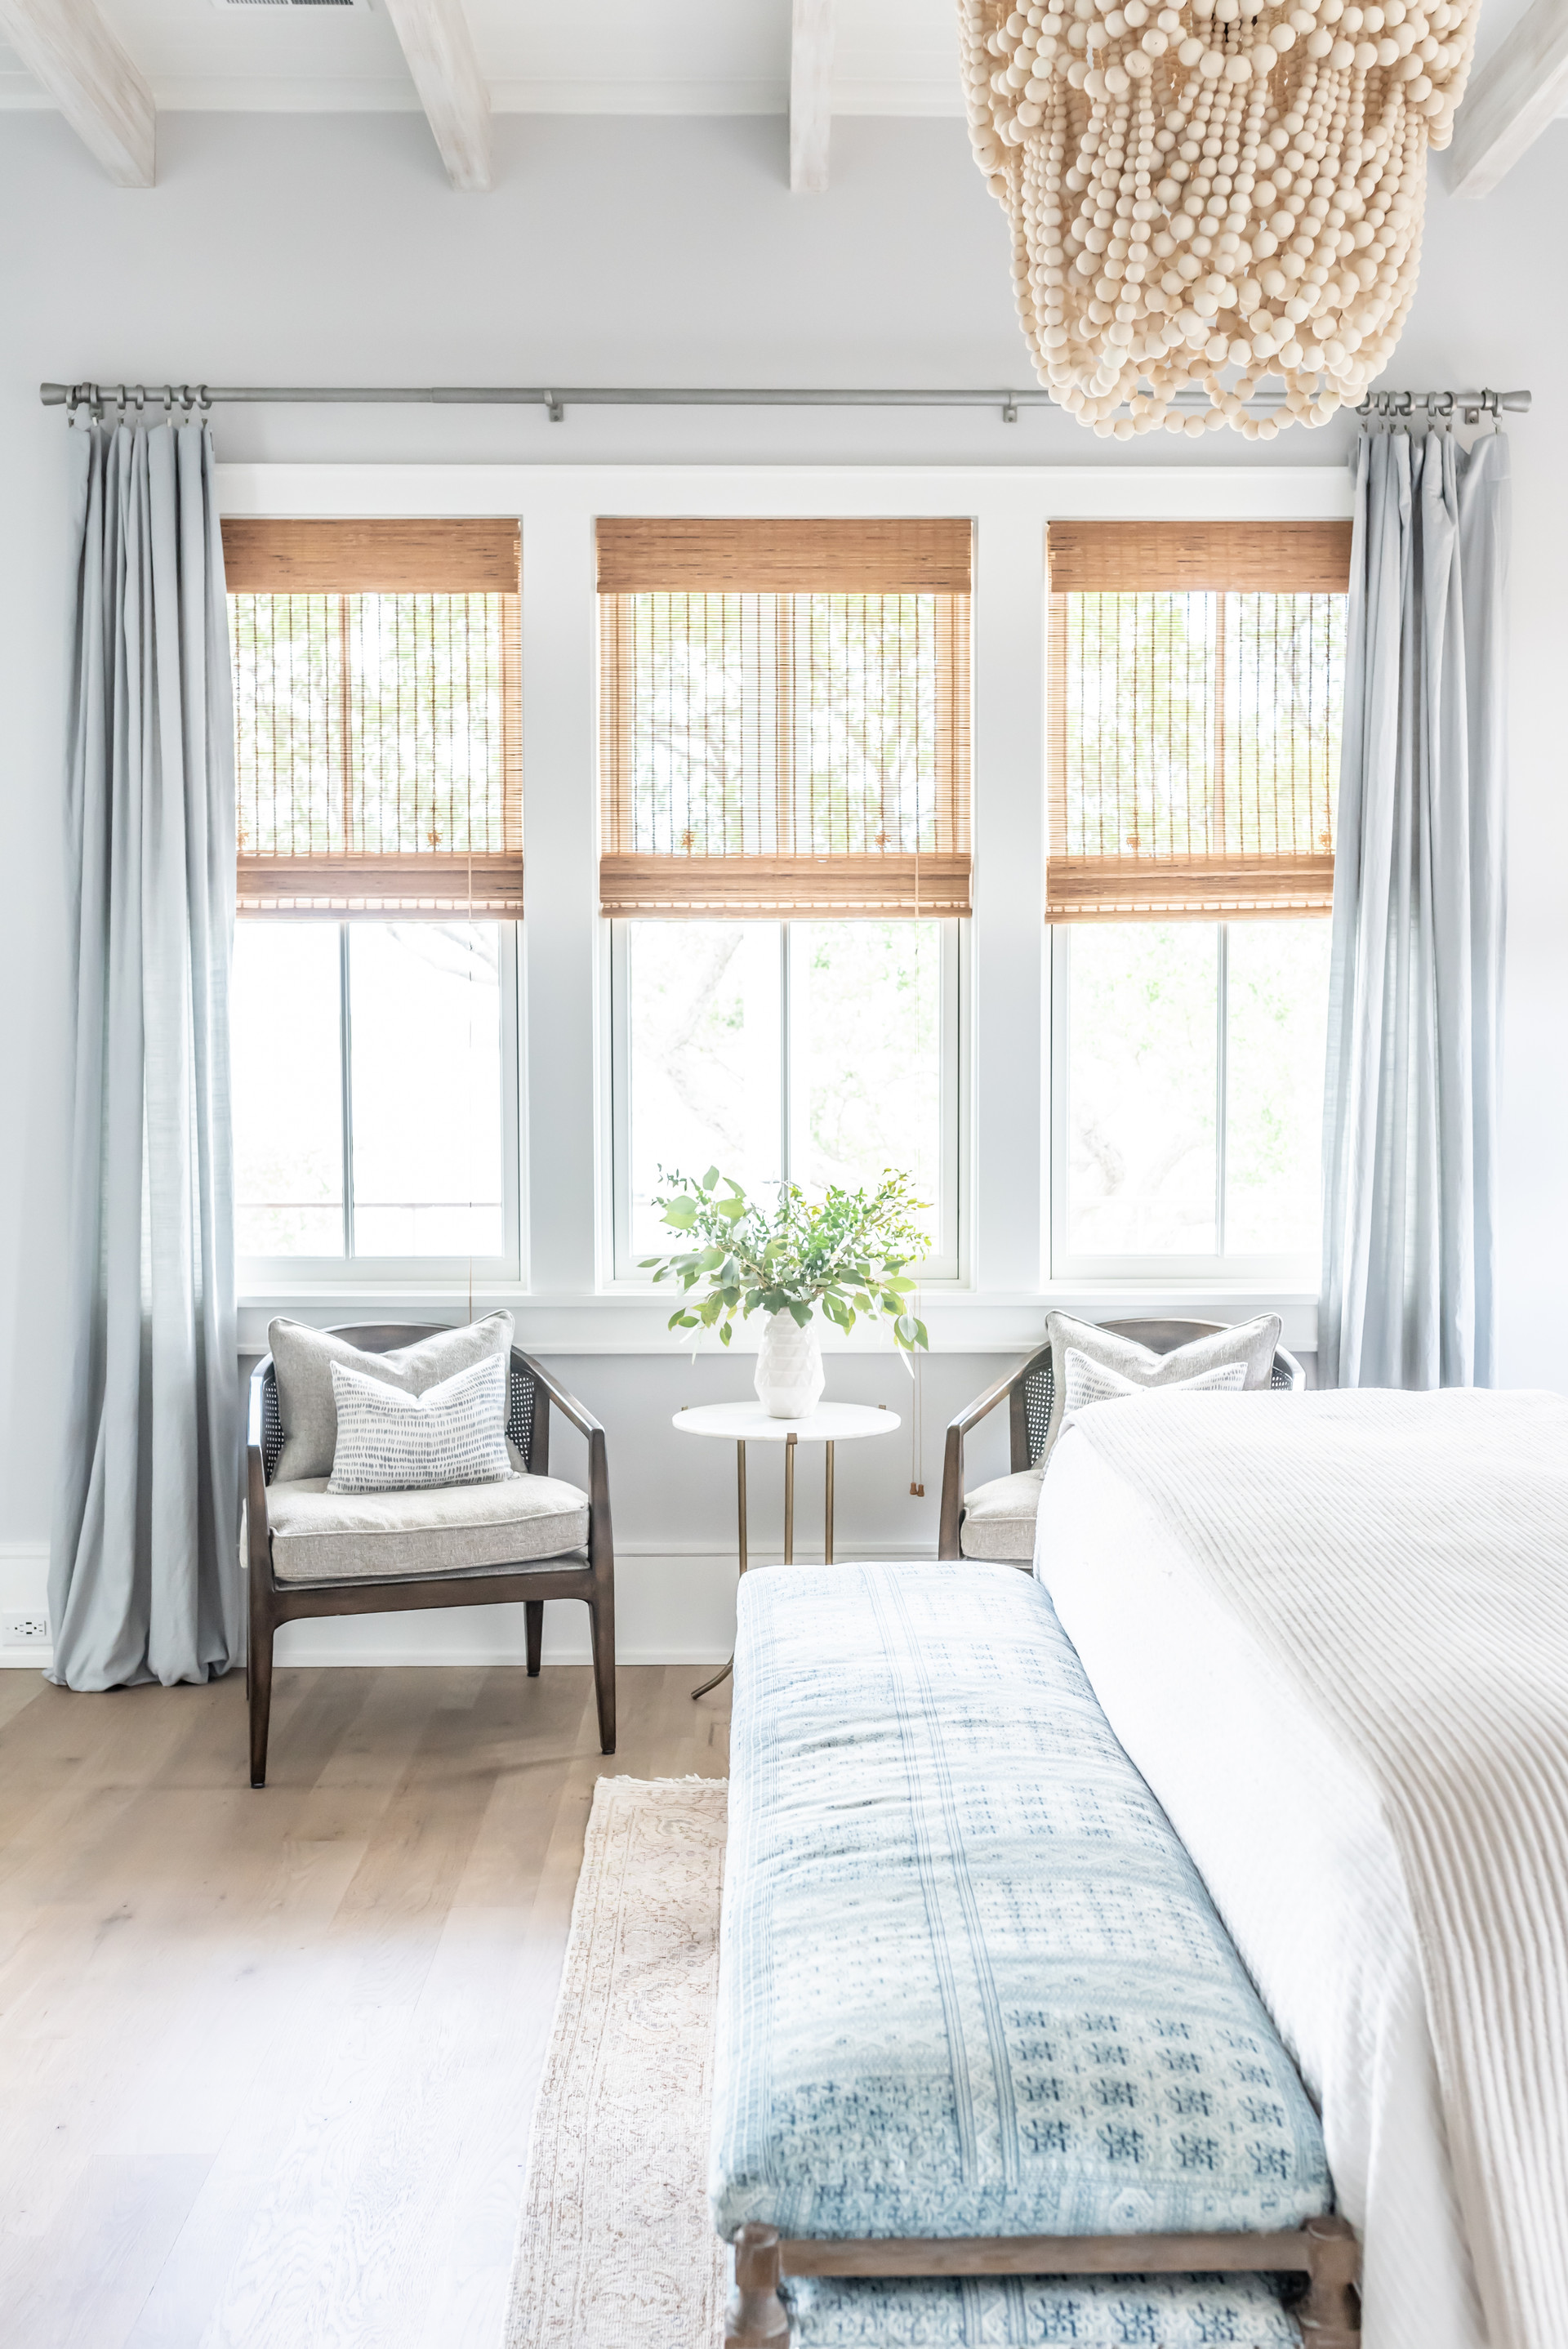 ADC-May1-2019-Master-Bedroom-22.jpg